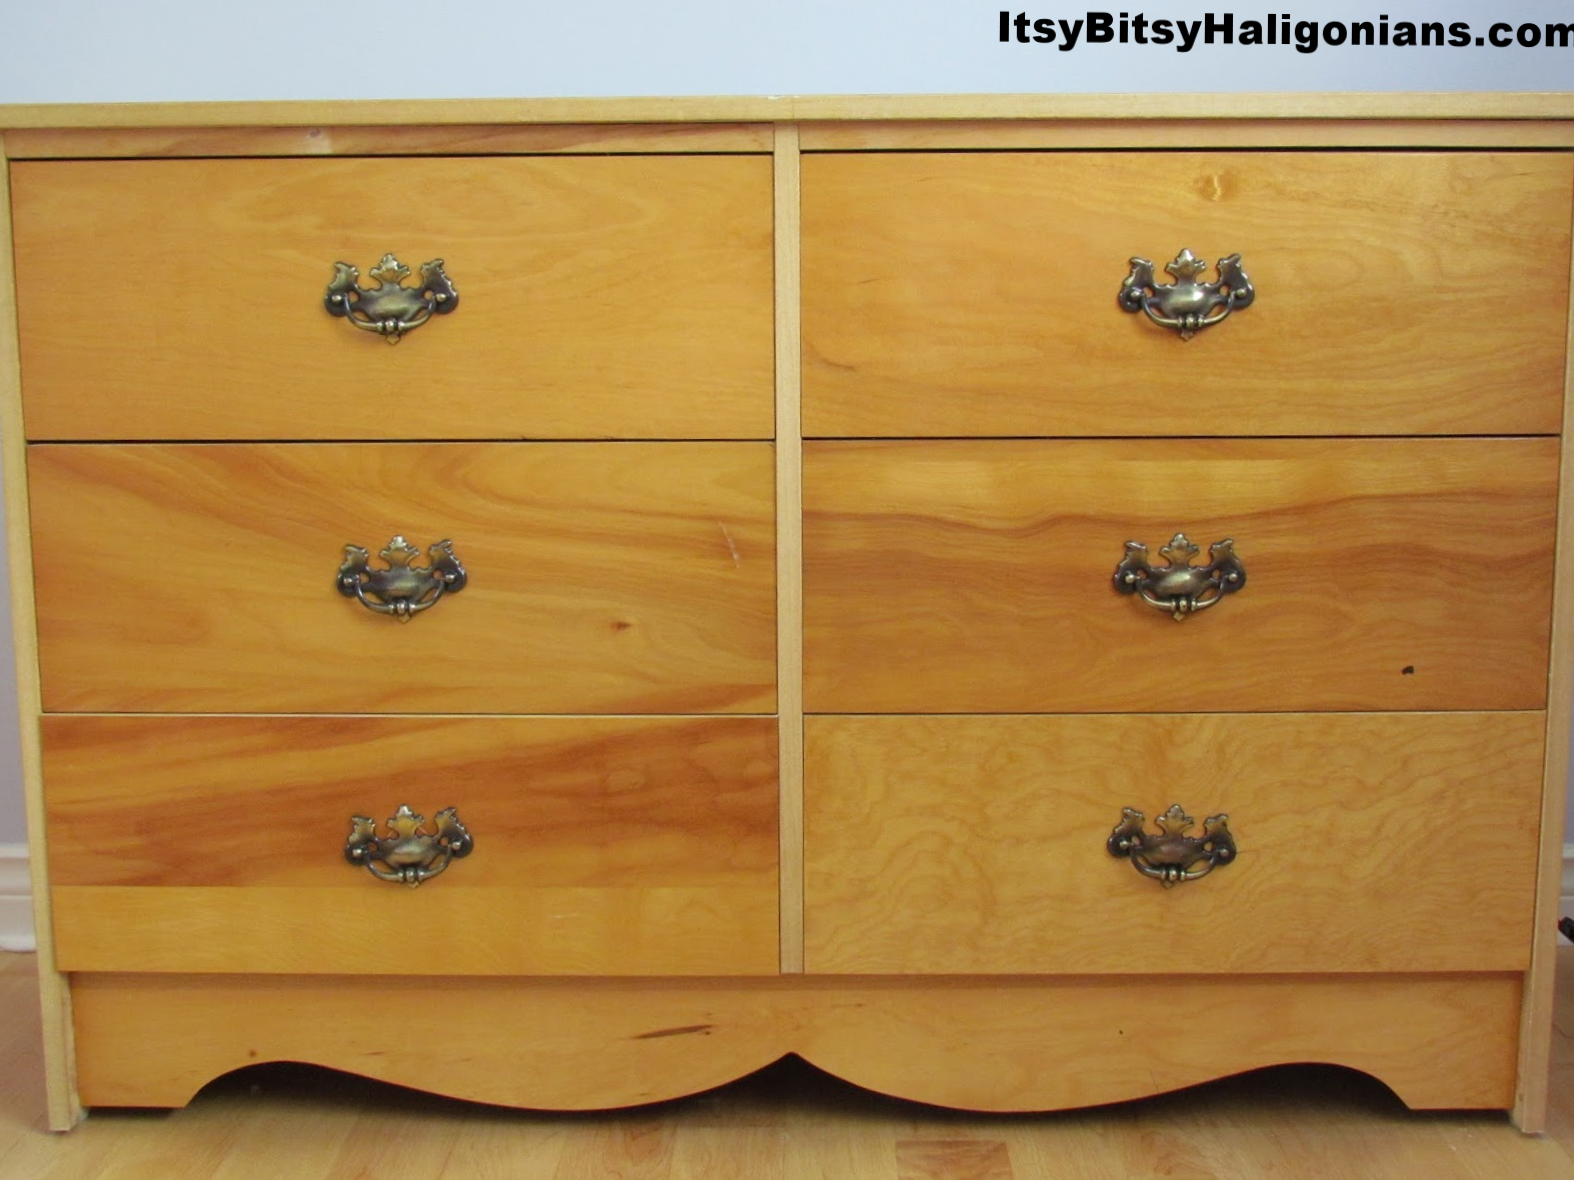 The original 1970s style dresser